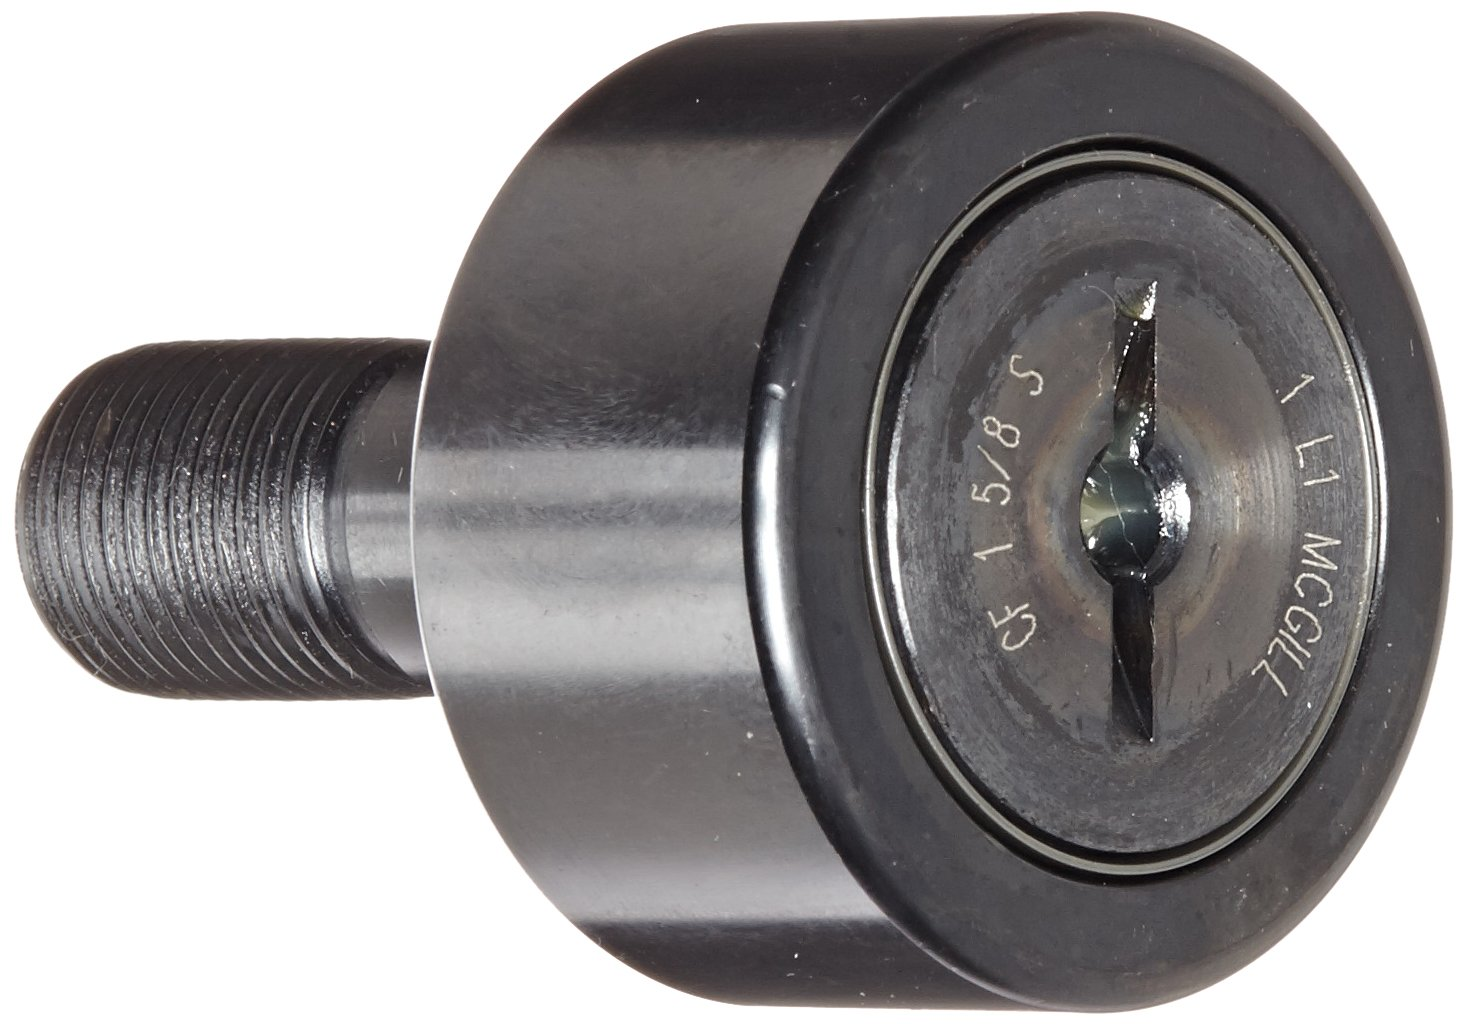 7//8 Roller Width 1-5//8 Roller Diameter Sealed//Slotted 0.625 Stud Diameter 1-5//8 Roller Diameter 7//8 Roller Width MCG-2150110000 McGill CF1 5//8S Cam Follower 5//8 Thread Size Inch 1-1//2 Stud Length 2-13//32 Overall Length Steel Standard Stud